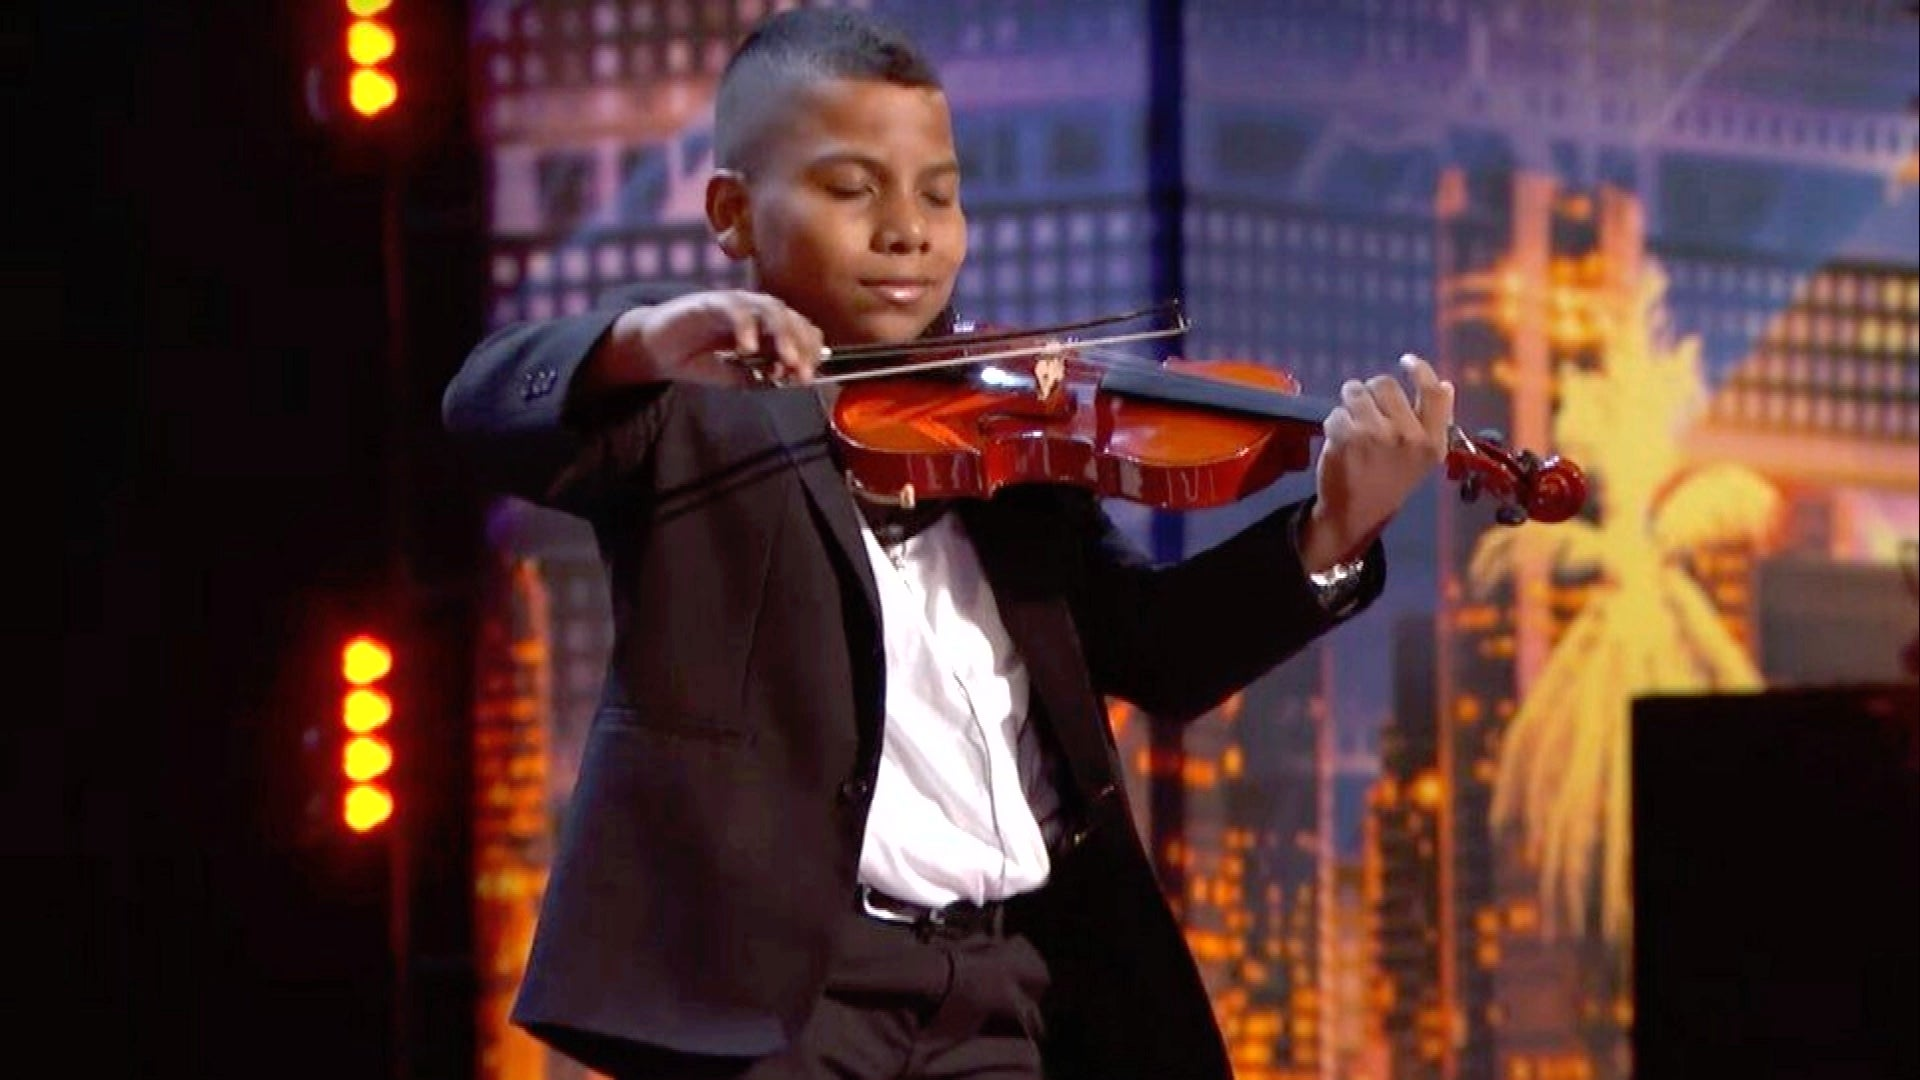 America's Got Talent' Season 14: All the Best Moments and